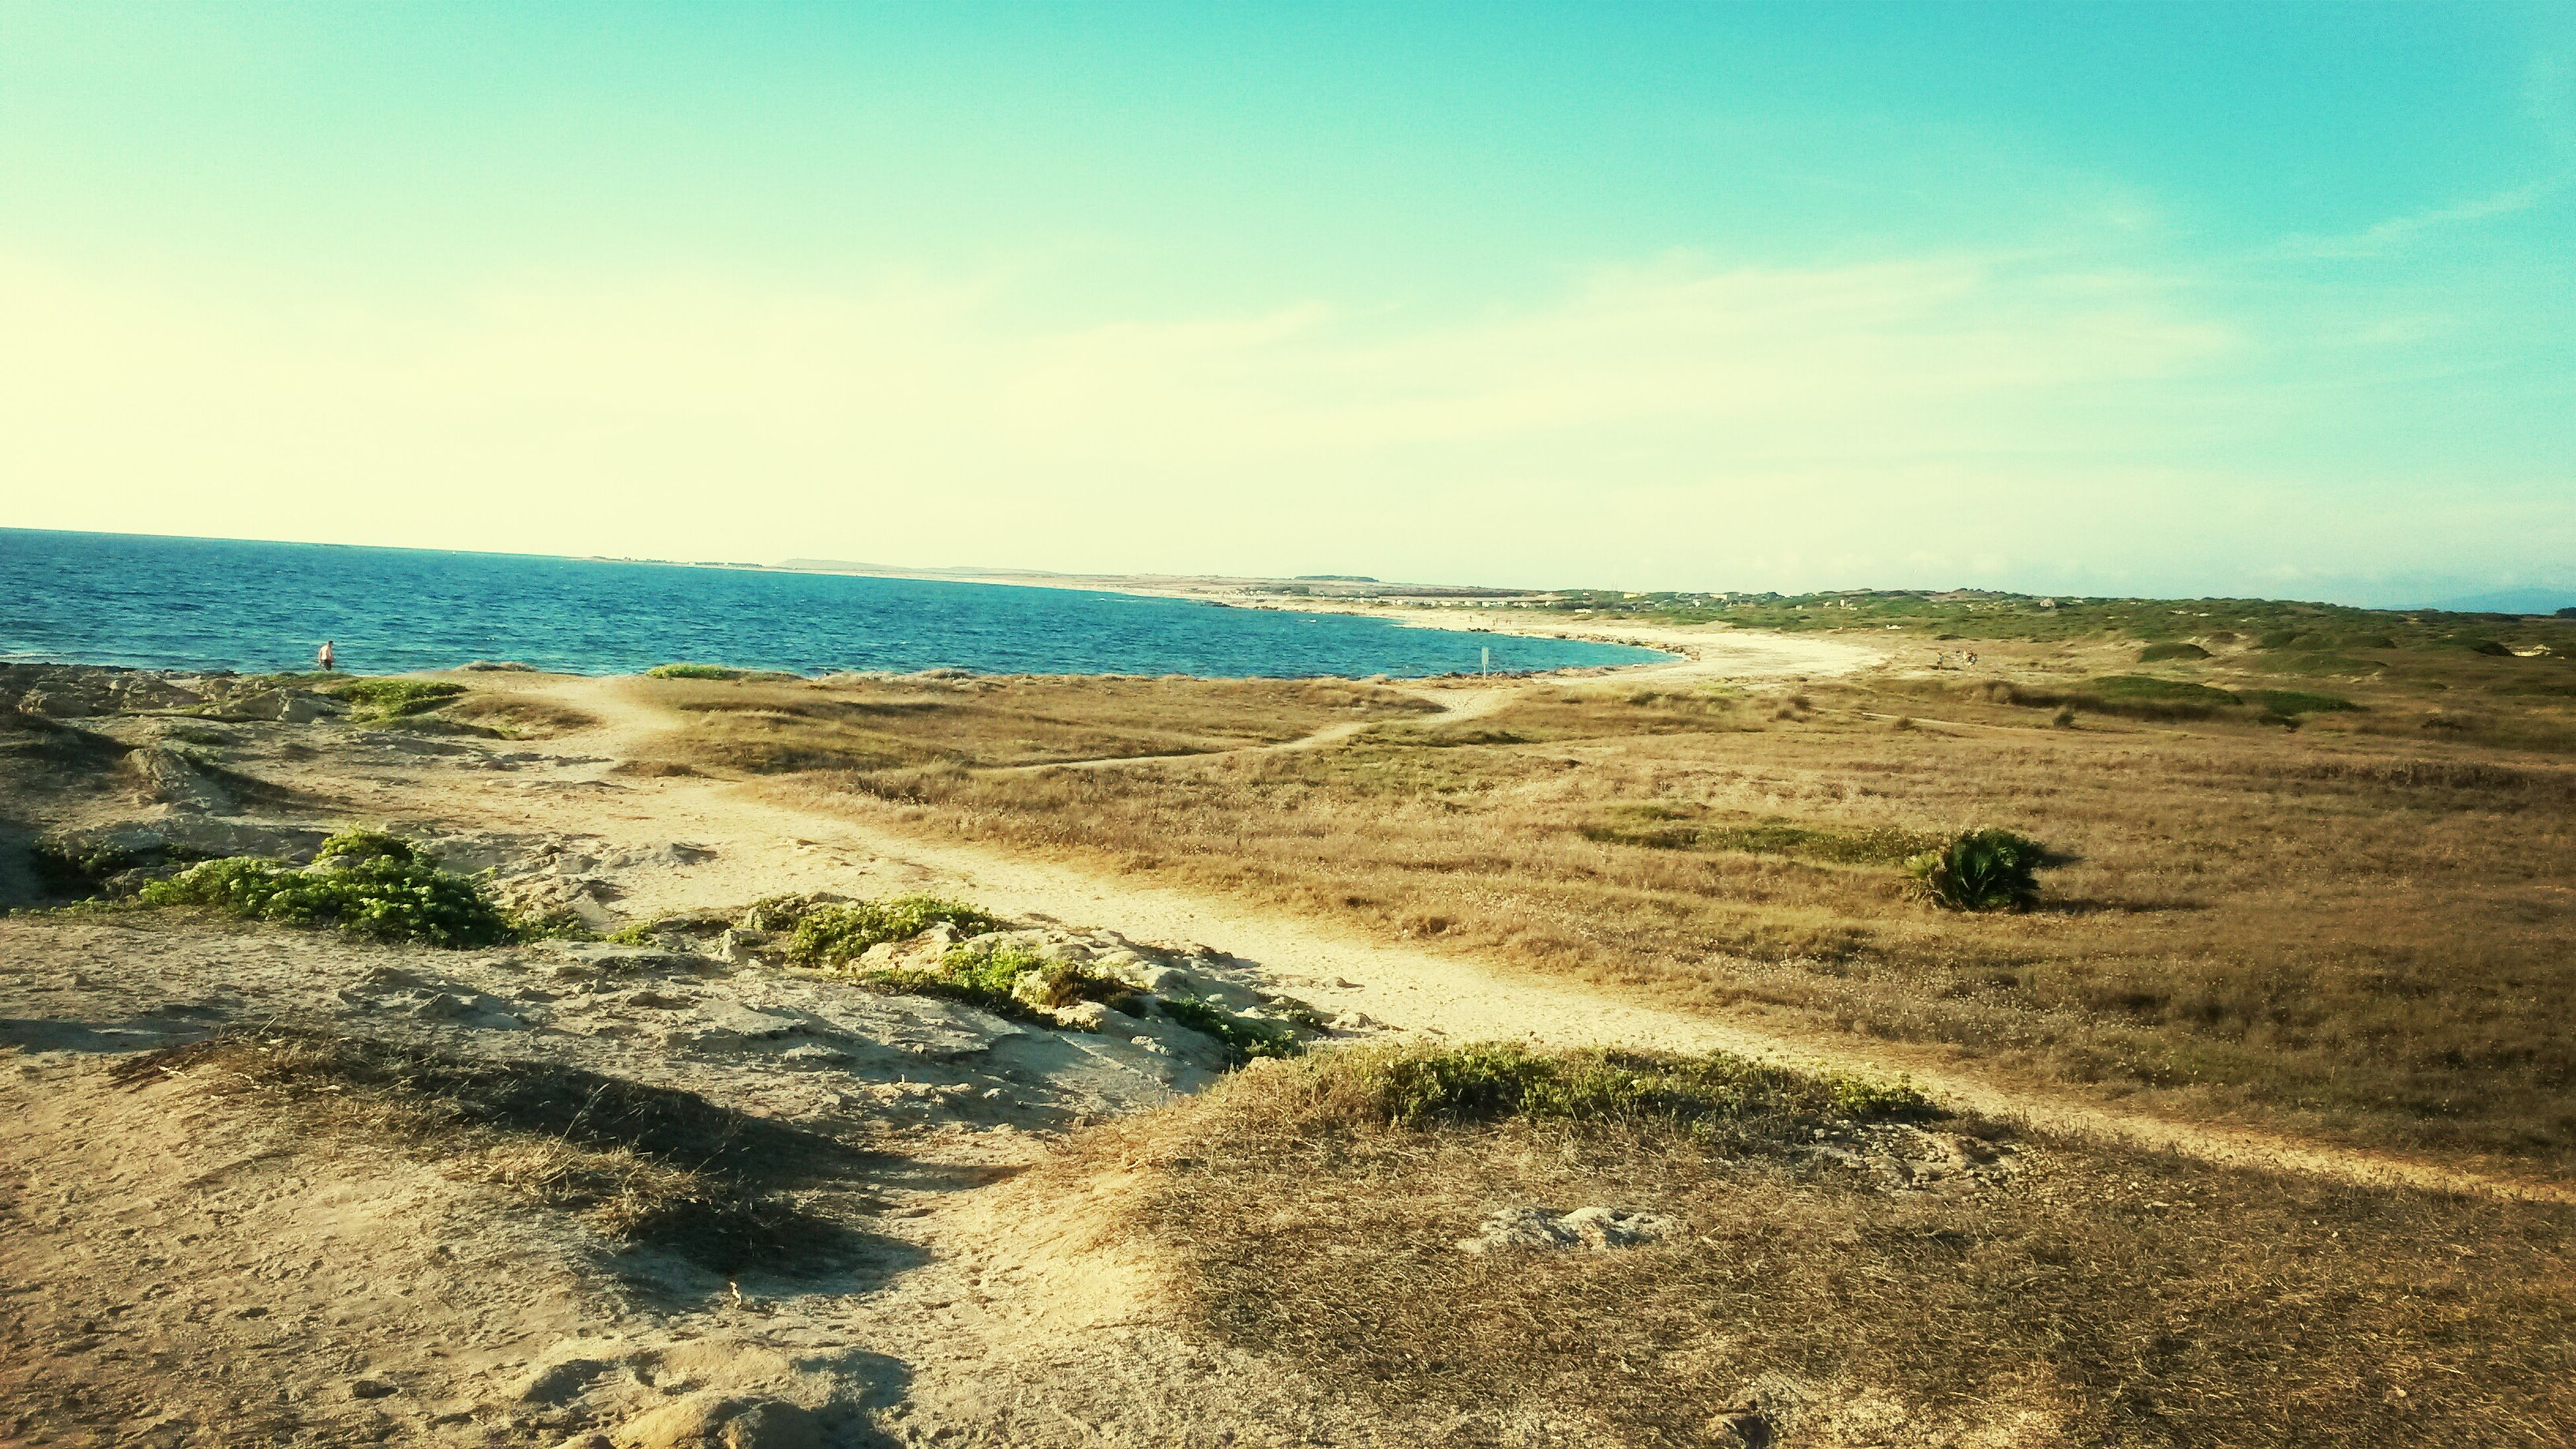 sea, water, horizon over water, sky, tranquil scene, tranquility, scenics, beach, beauty in nature, blue, nature, shore, grass, sand, idyllic, cloud, coastline, remote, day, cloud - sky